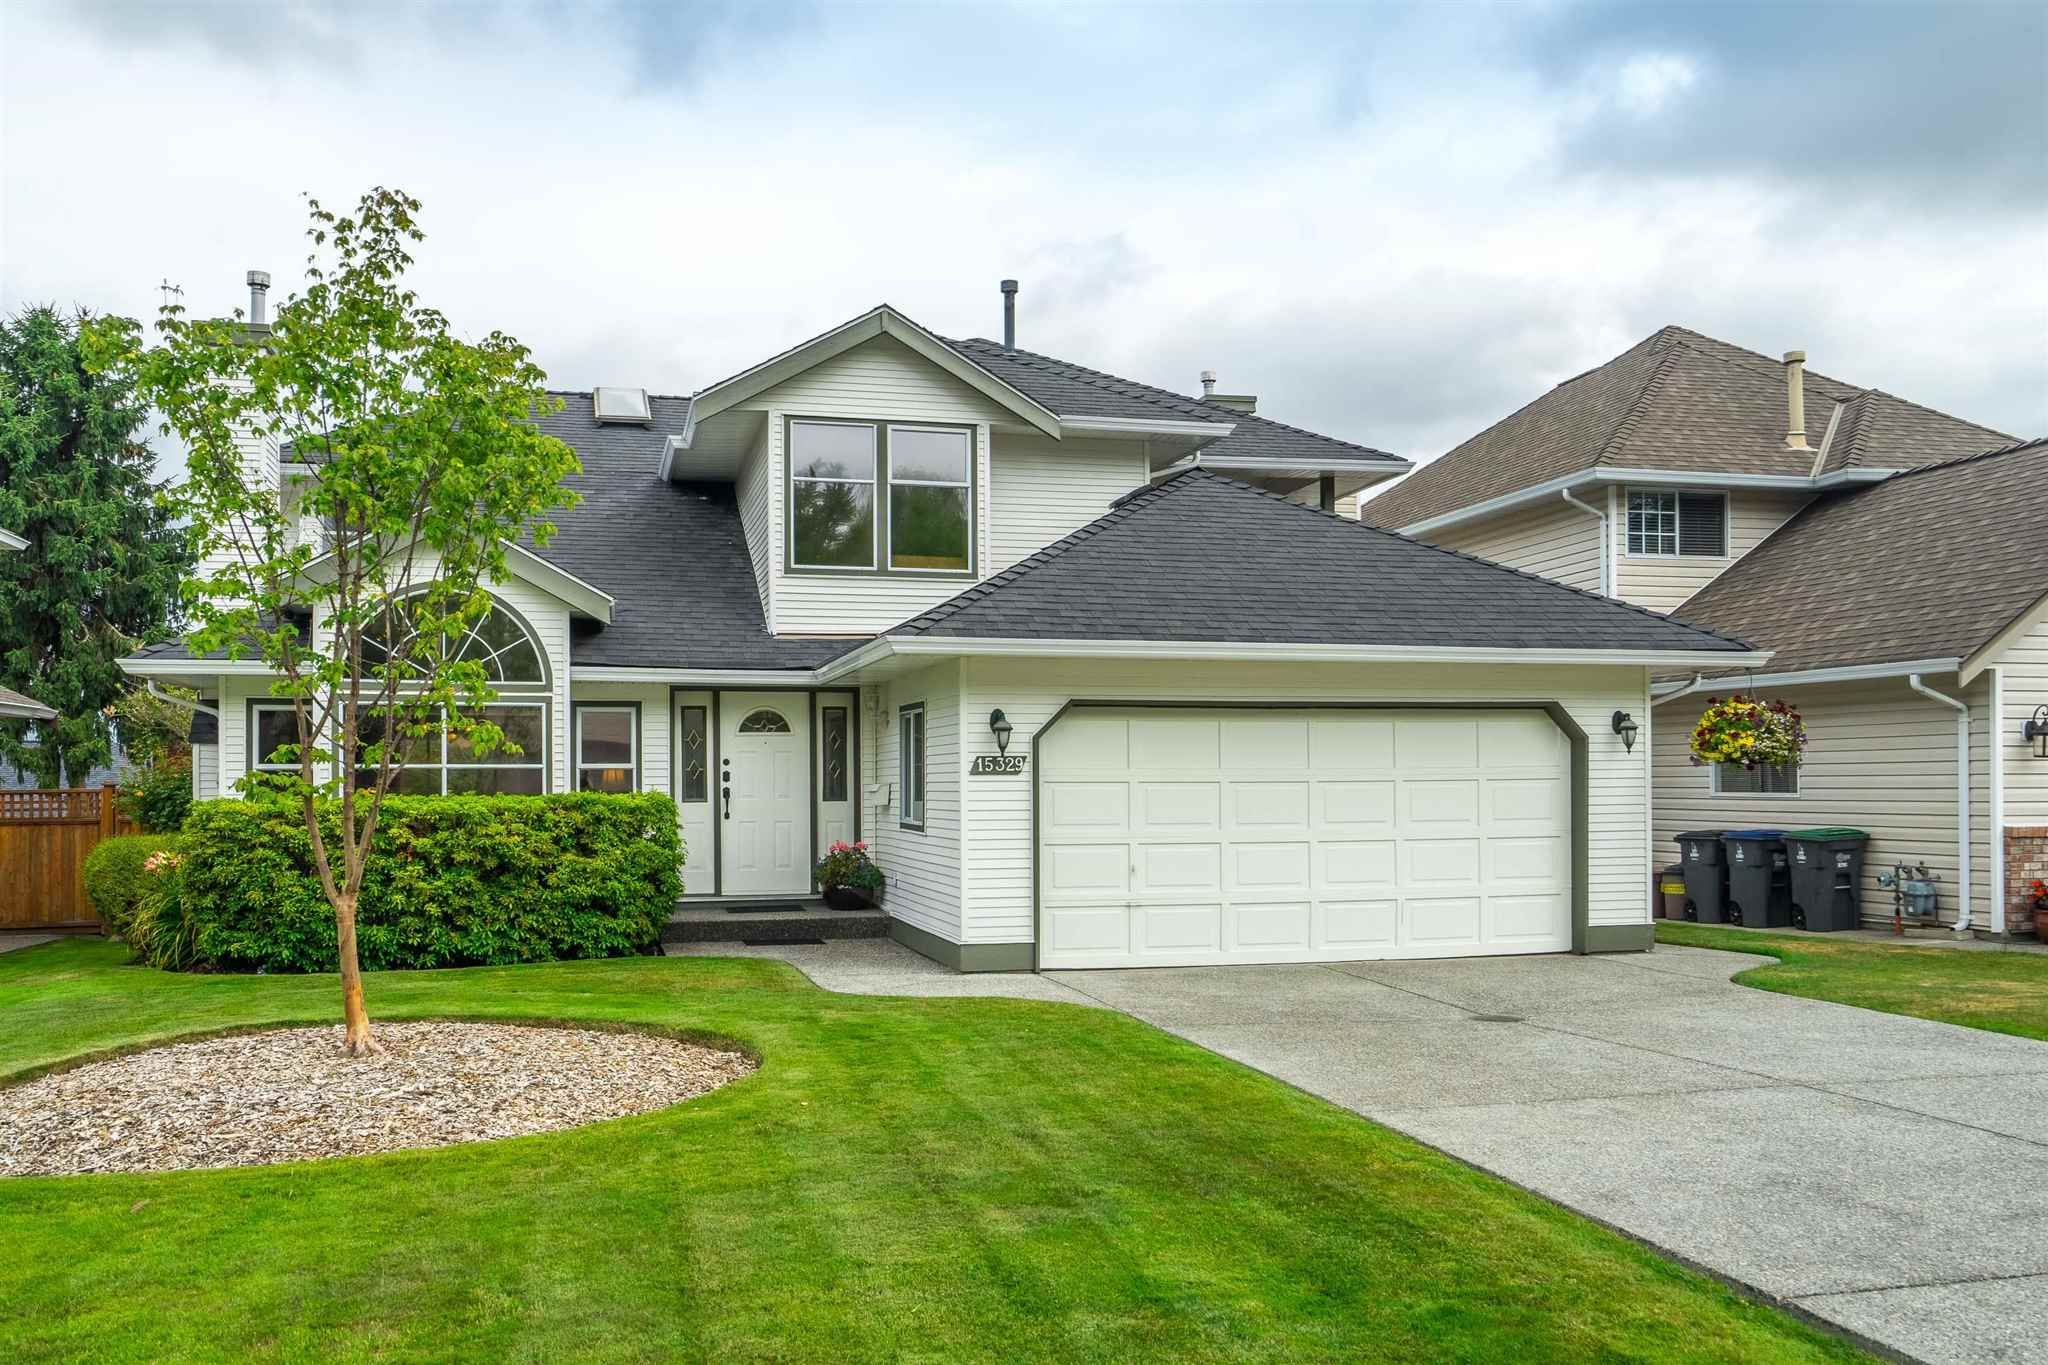 Main Photo: 15329 28A Avenue in Surrey: King George Corridor House for sale (South Surrey White Rock)  : MLS®# R2602714